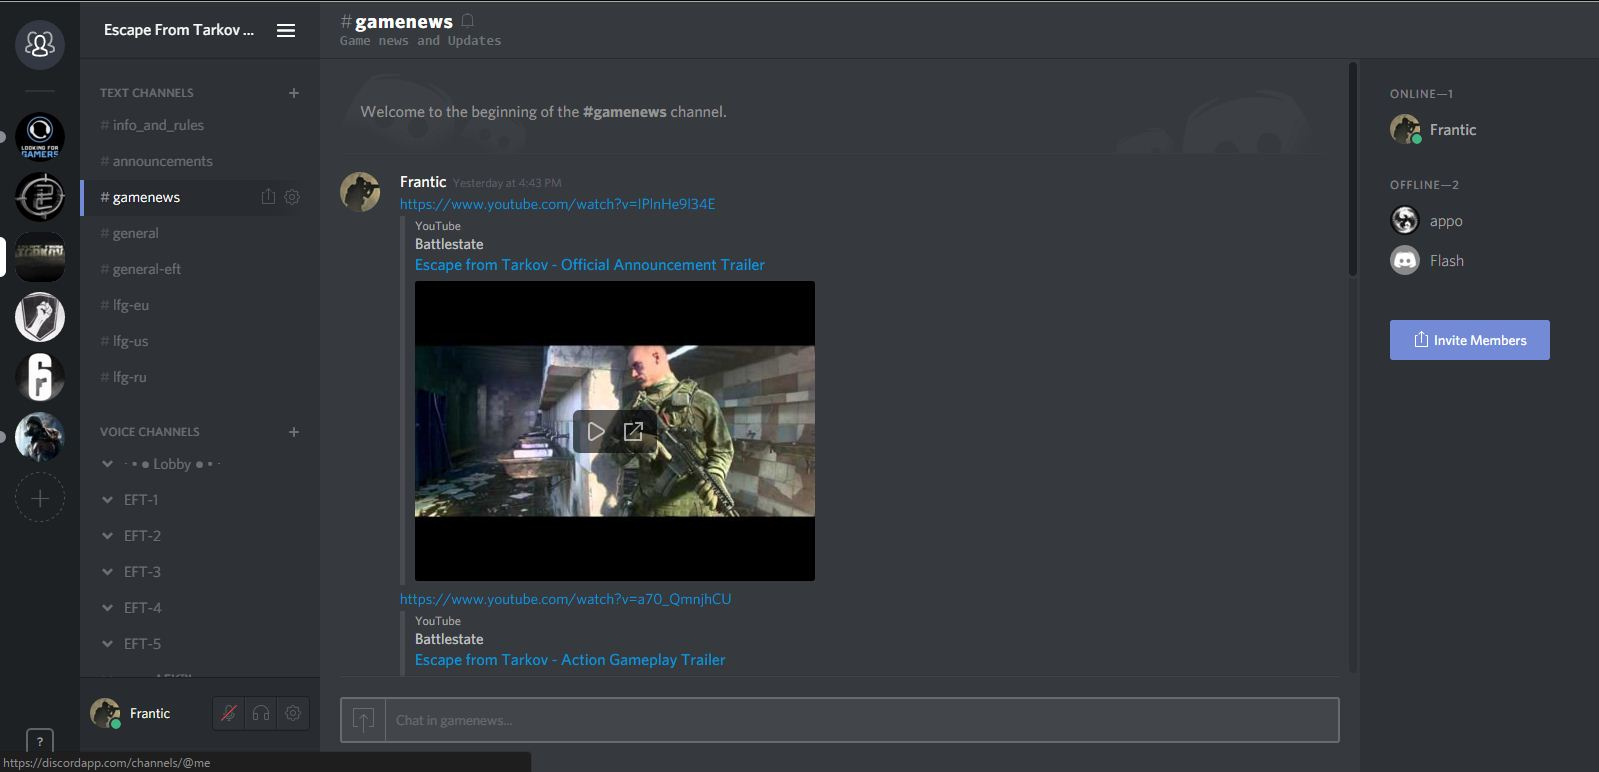 1 EFT Discord (Unofficial) - DO NOT VERIFY HERE - Clans